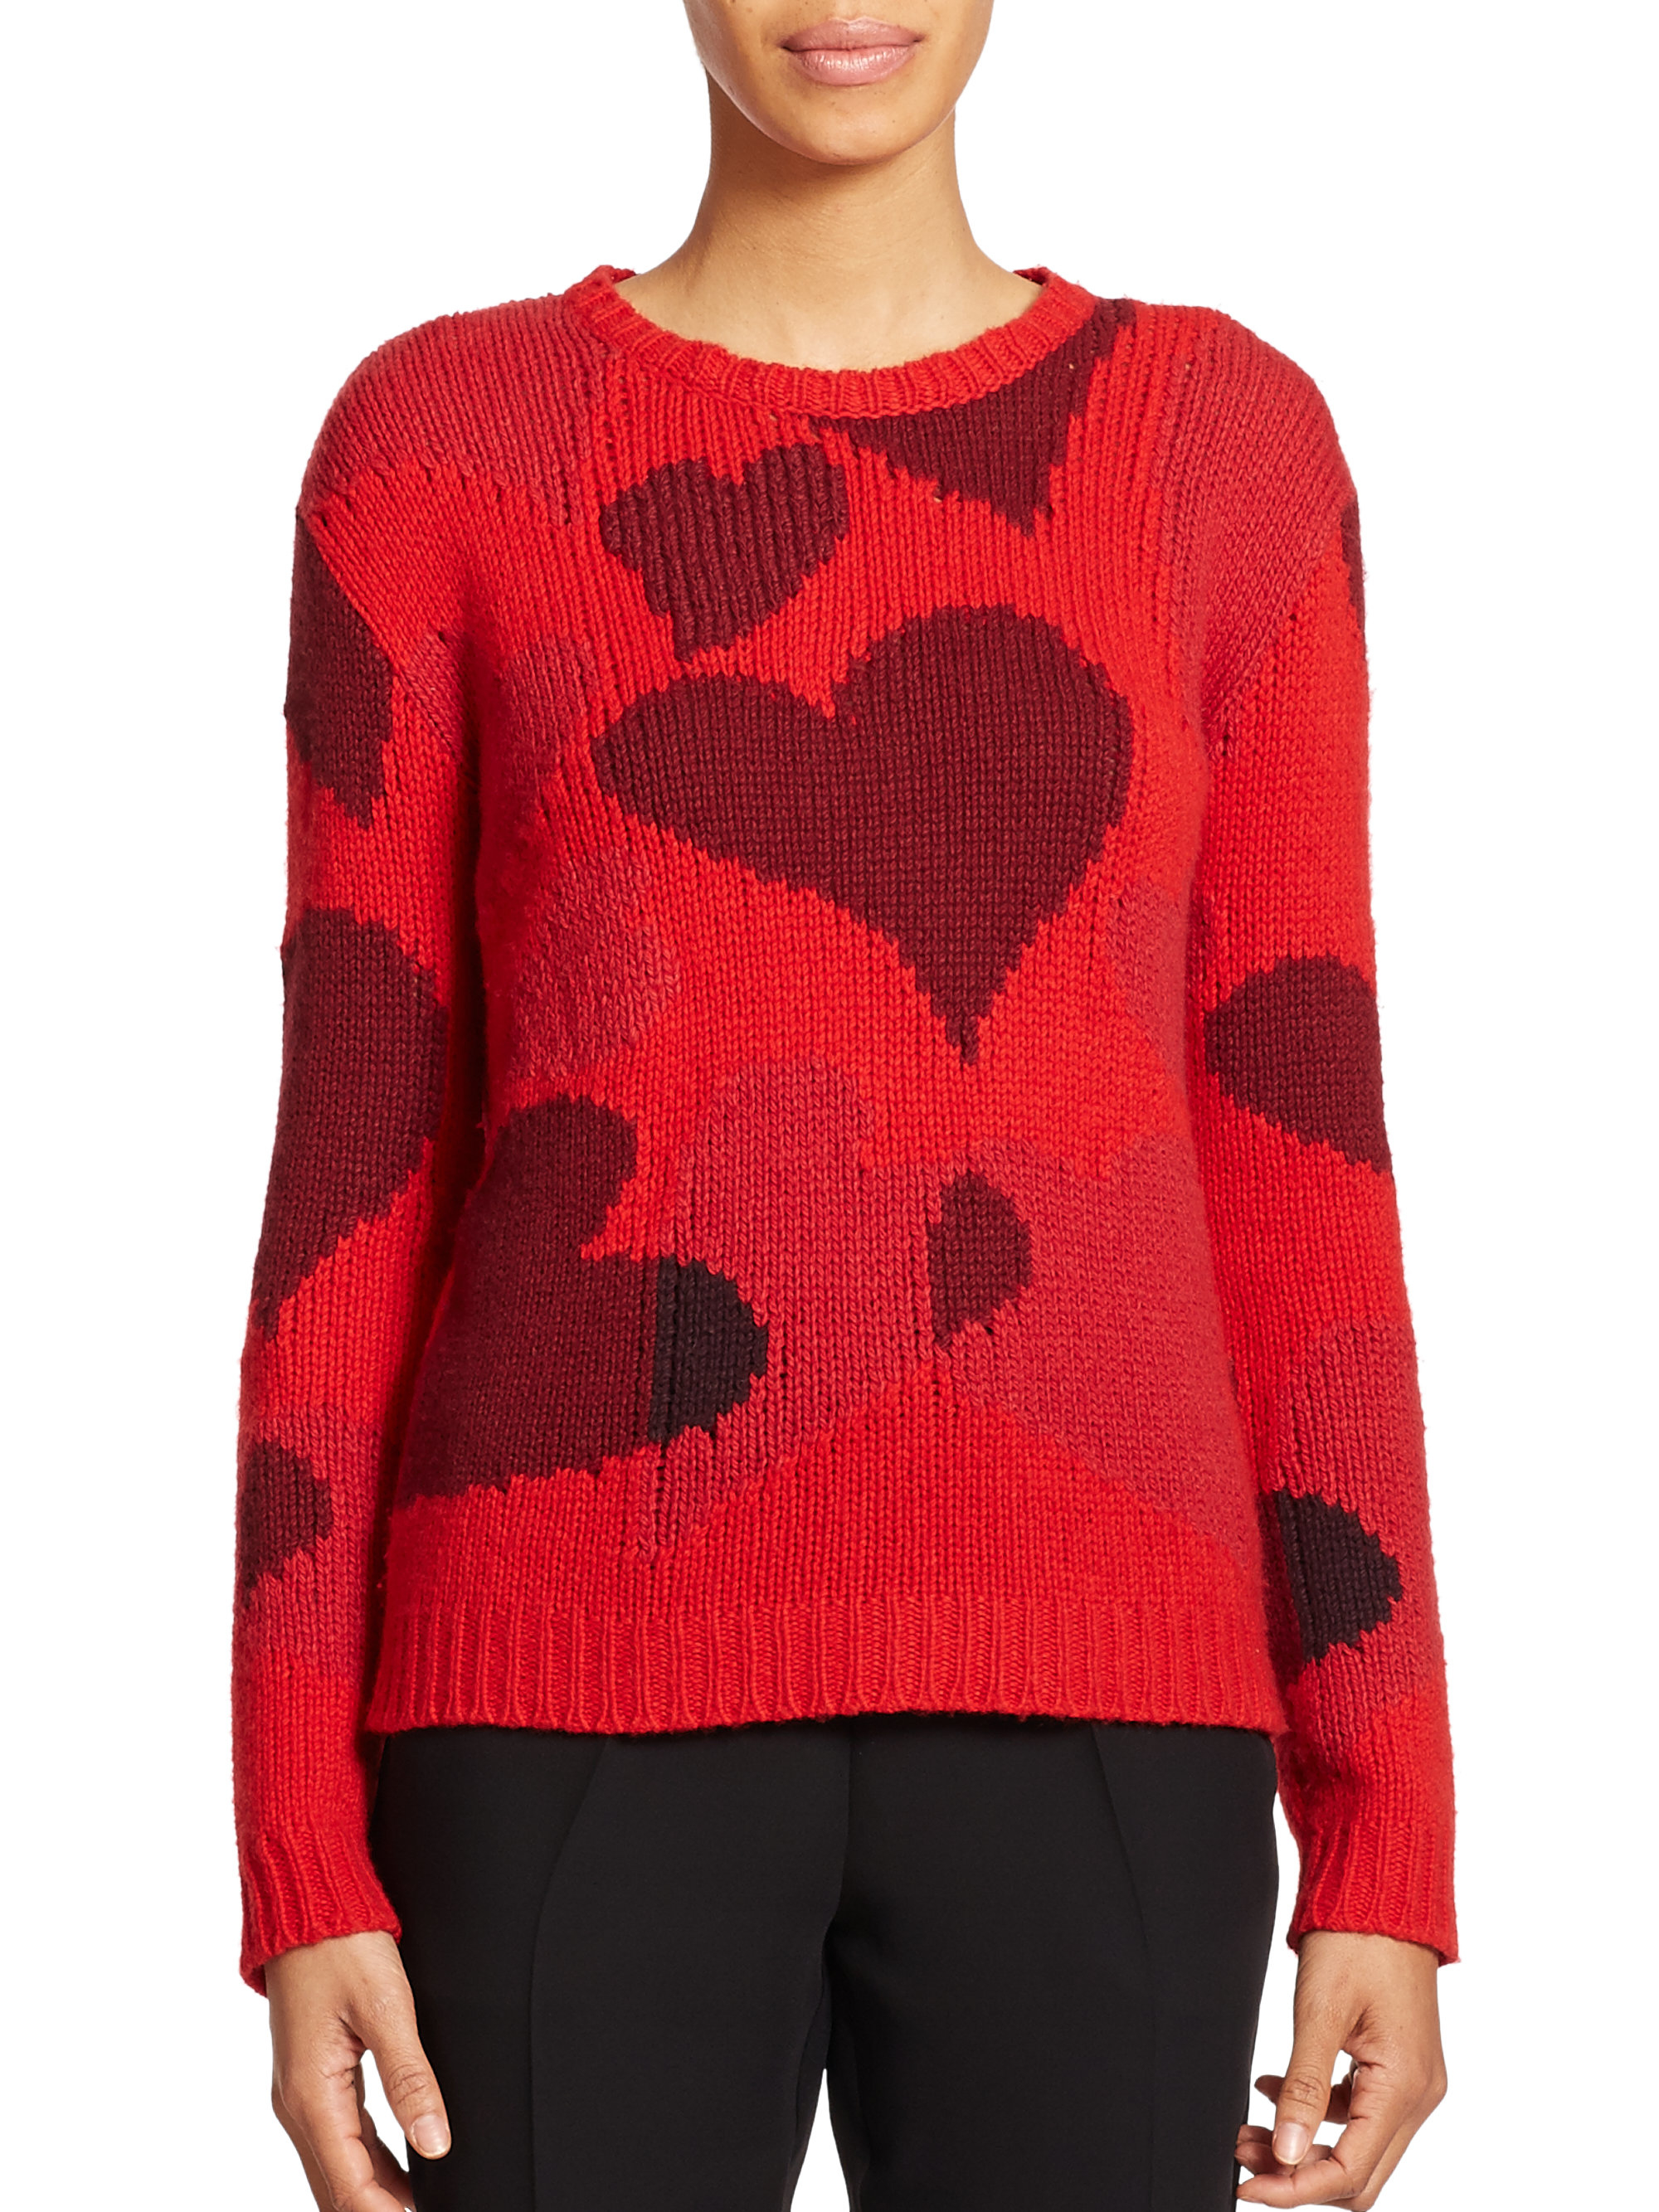 Intarsia Sweater Women